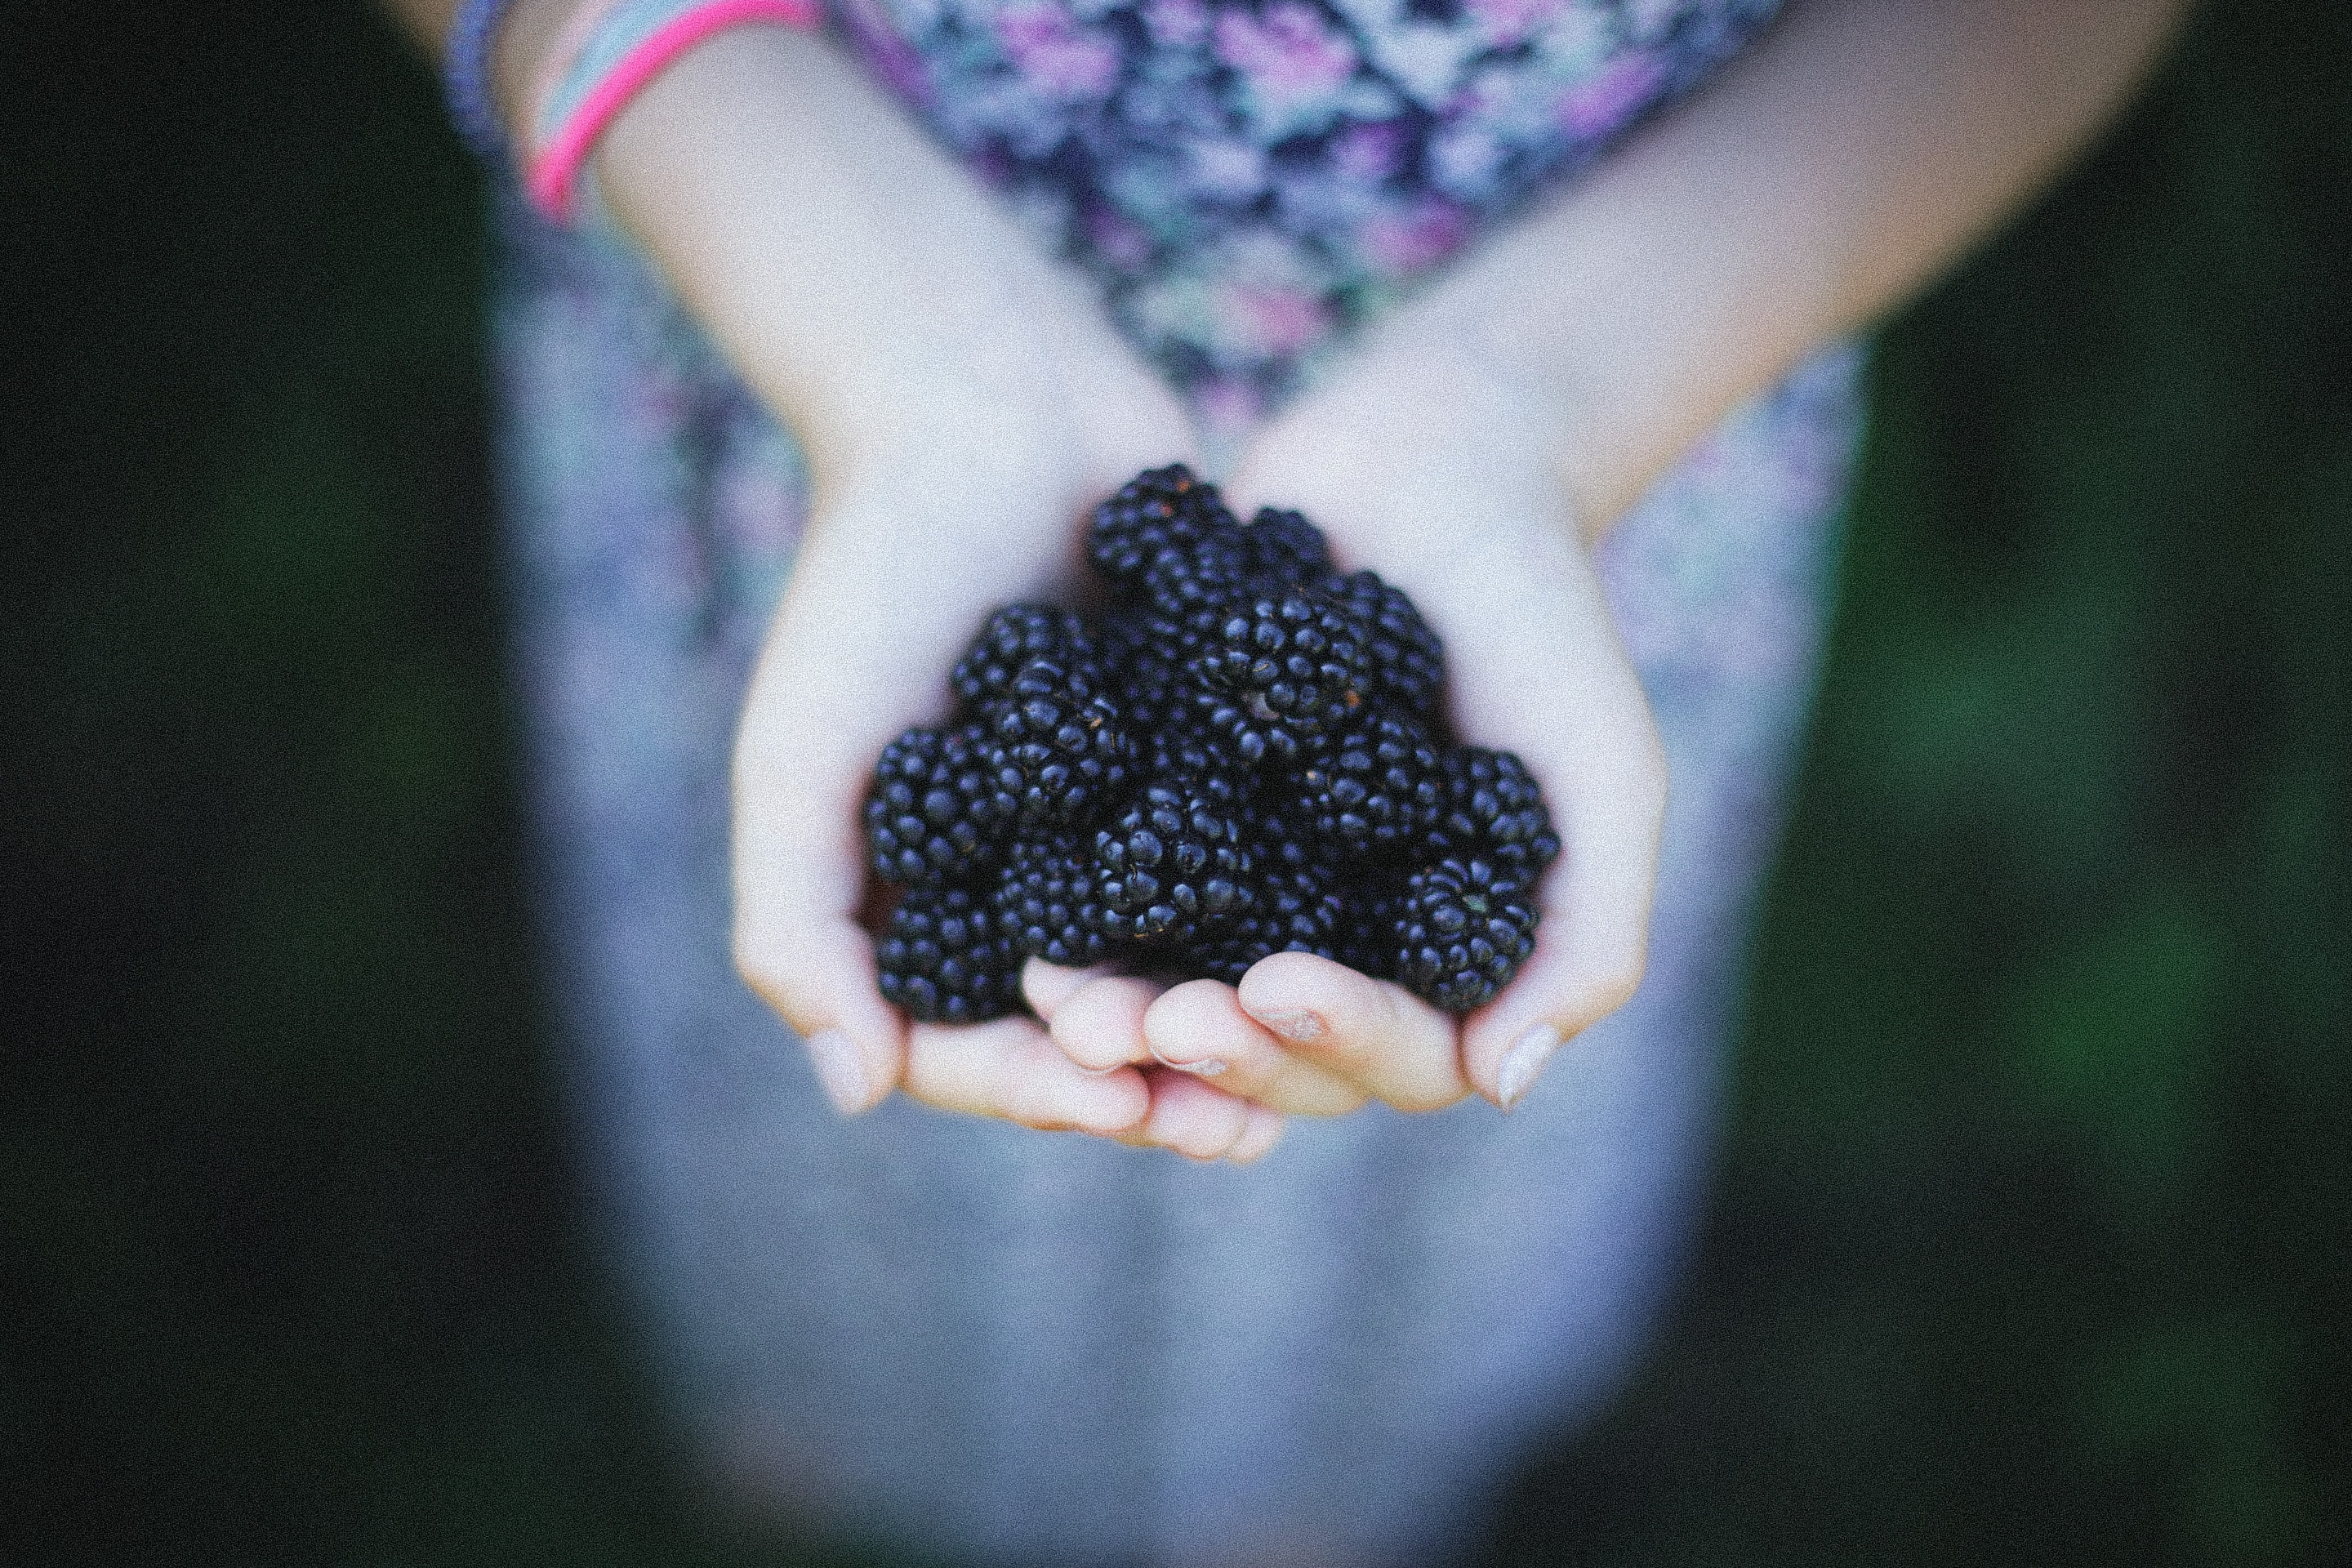 A person holding blackberries in their cupped hands